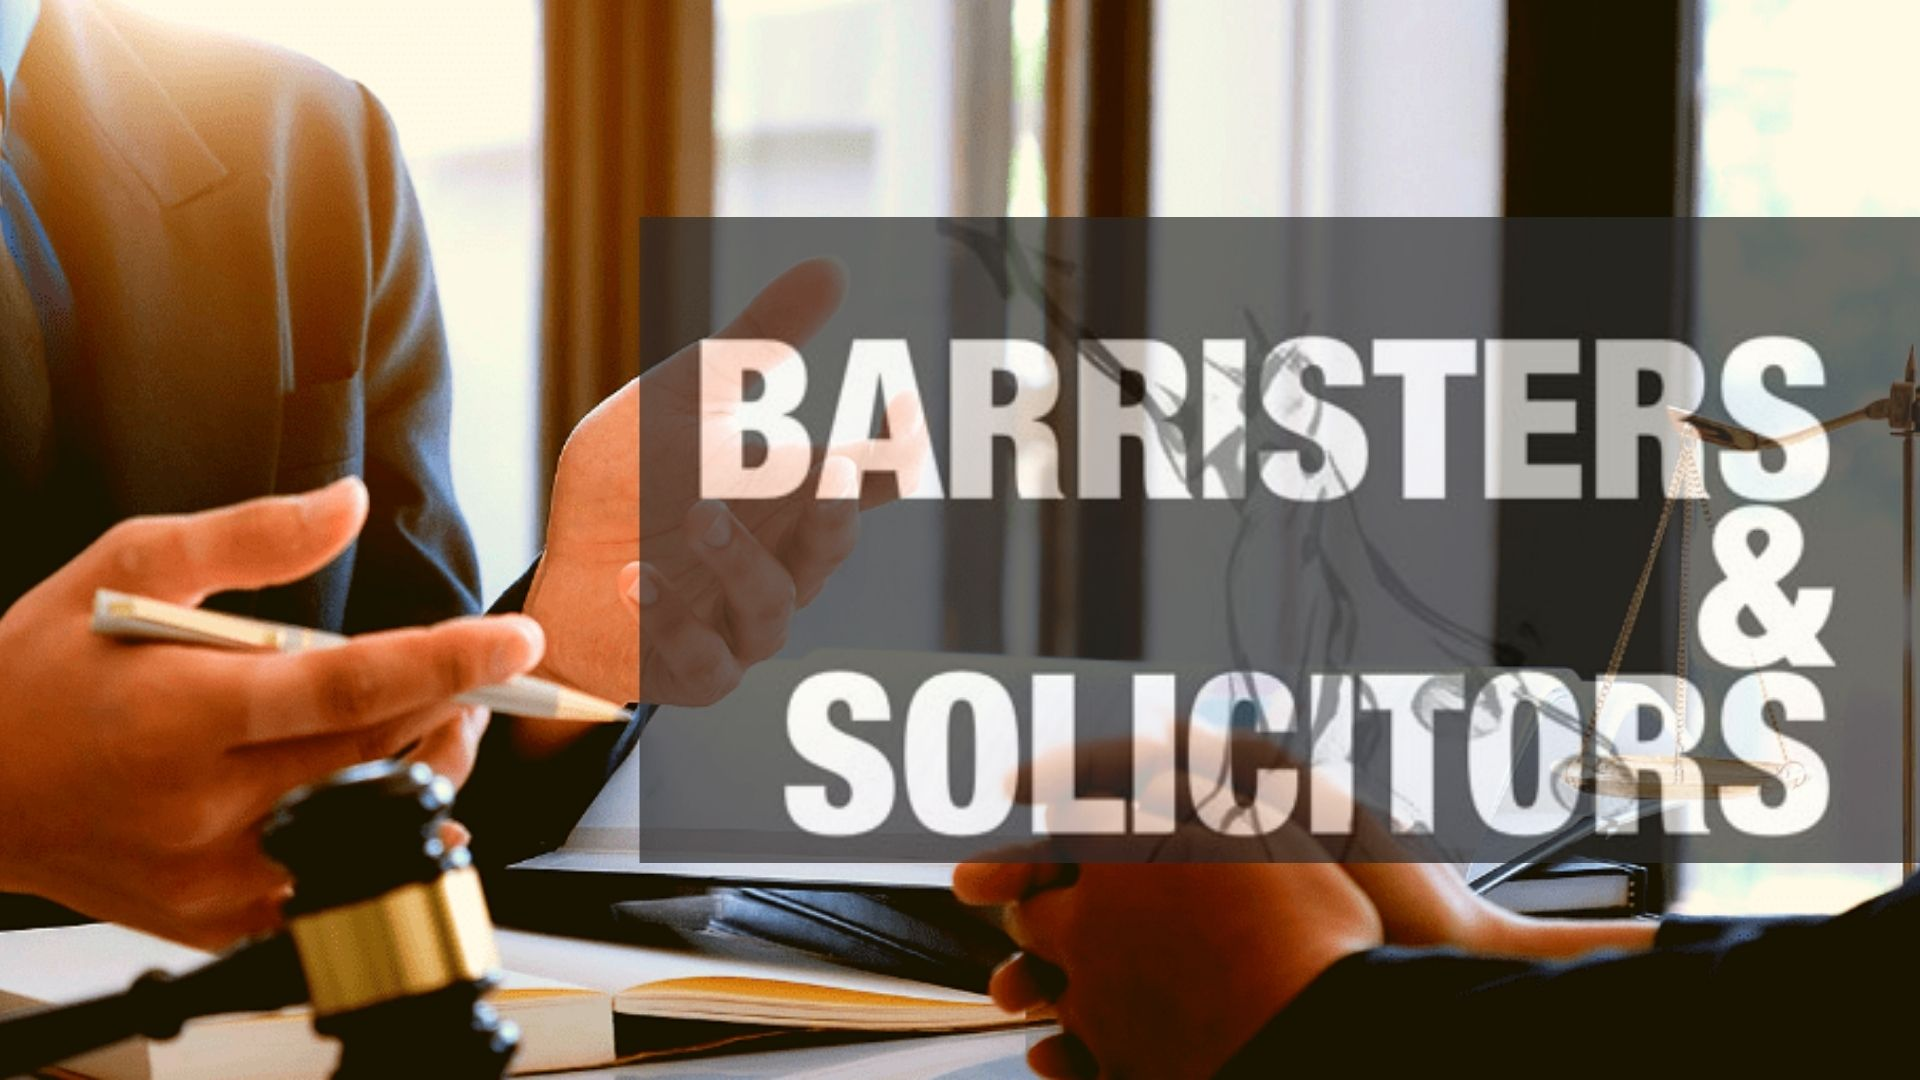 What Is Better A Barrister Or A Solicitor?